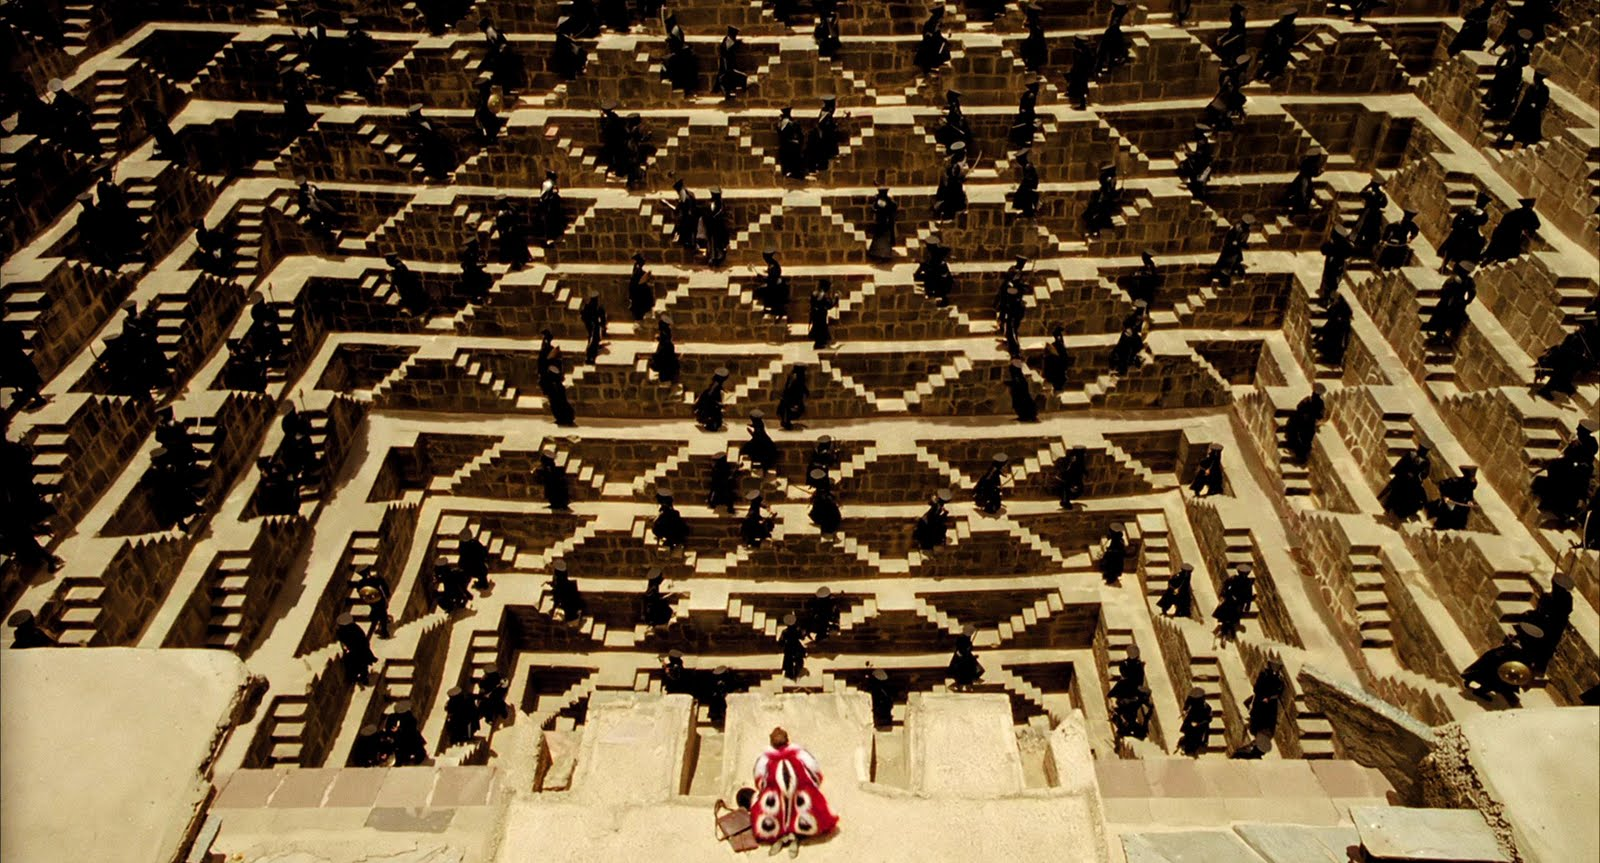 The soldiers waiting in the Chand Baori stepwell in The Fall (2006)